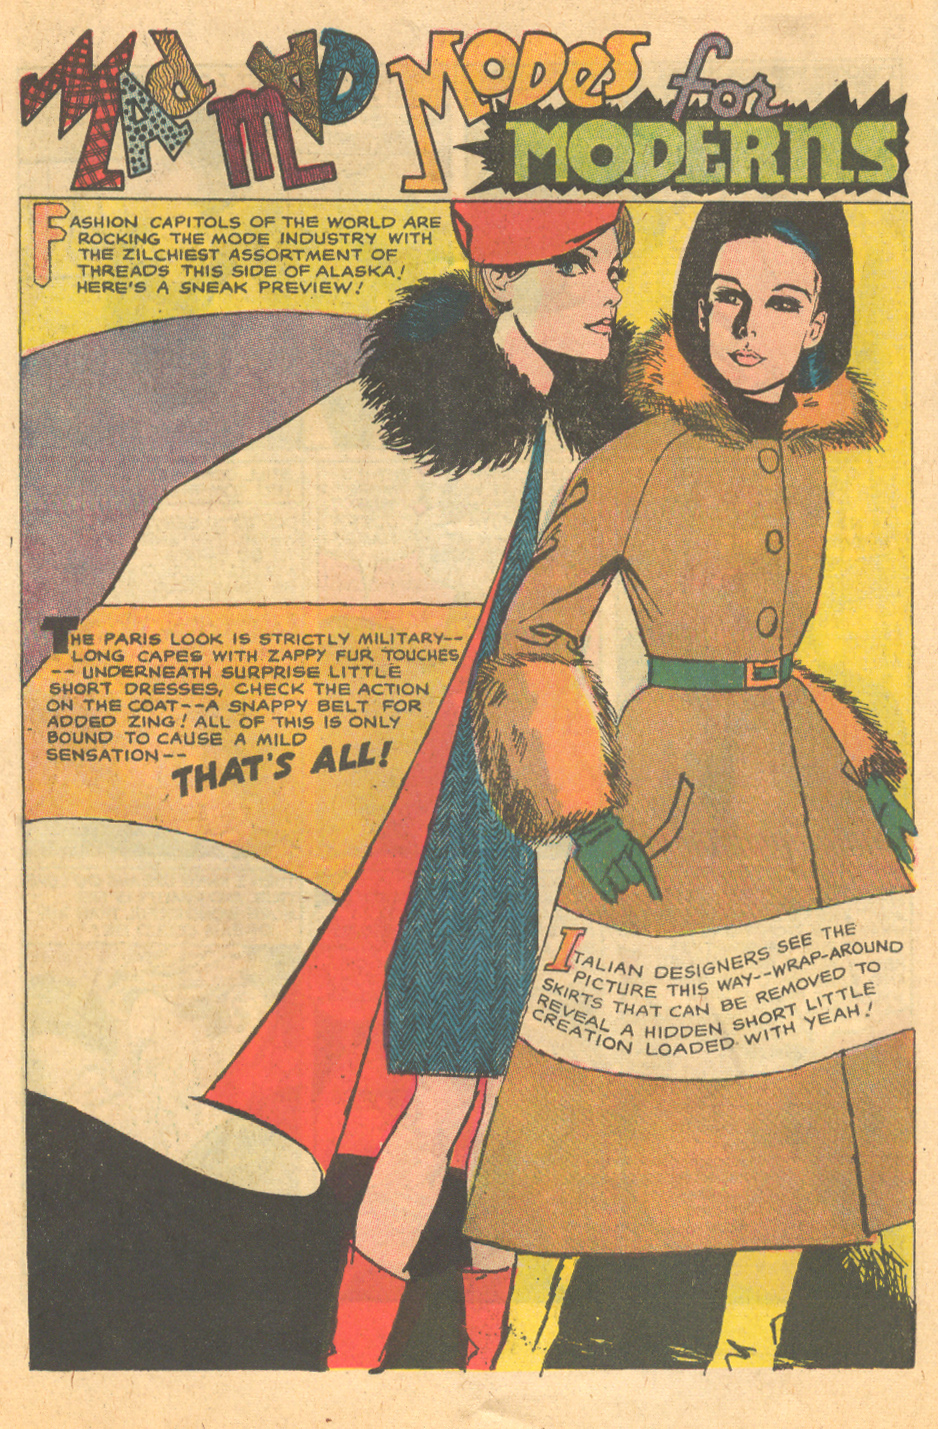 Tony Abruzzo fashion illustration comic books